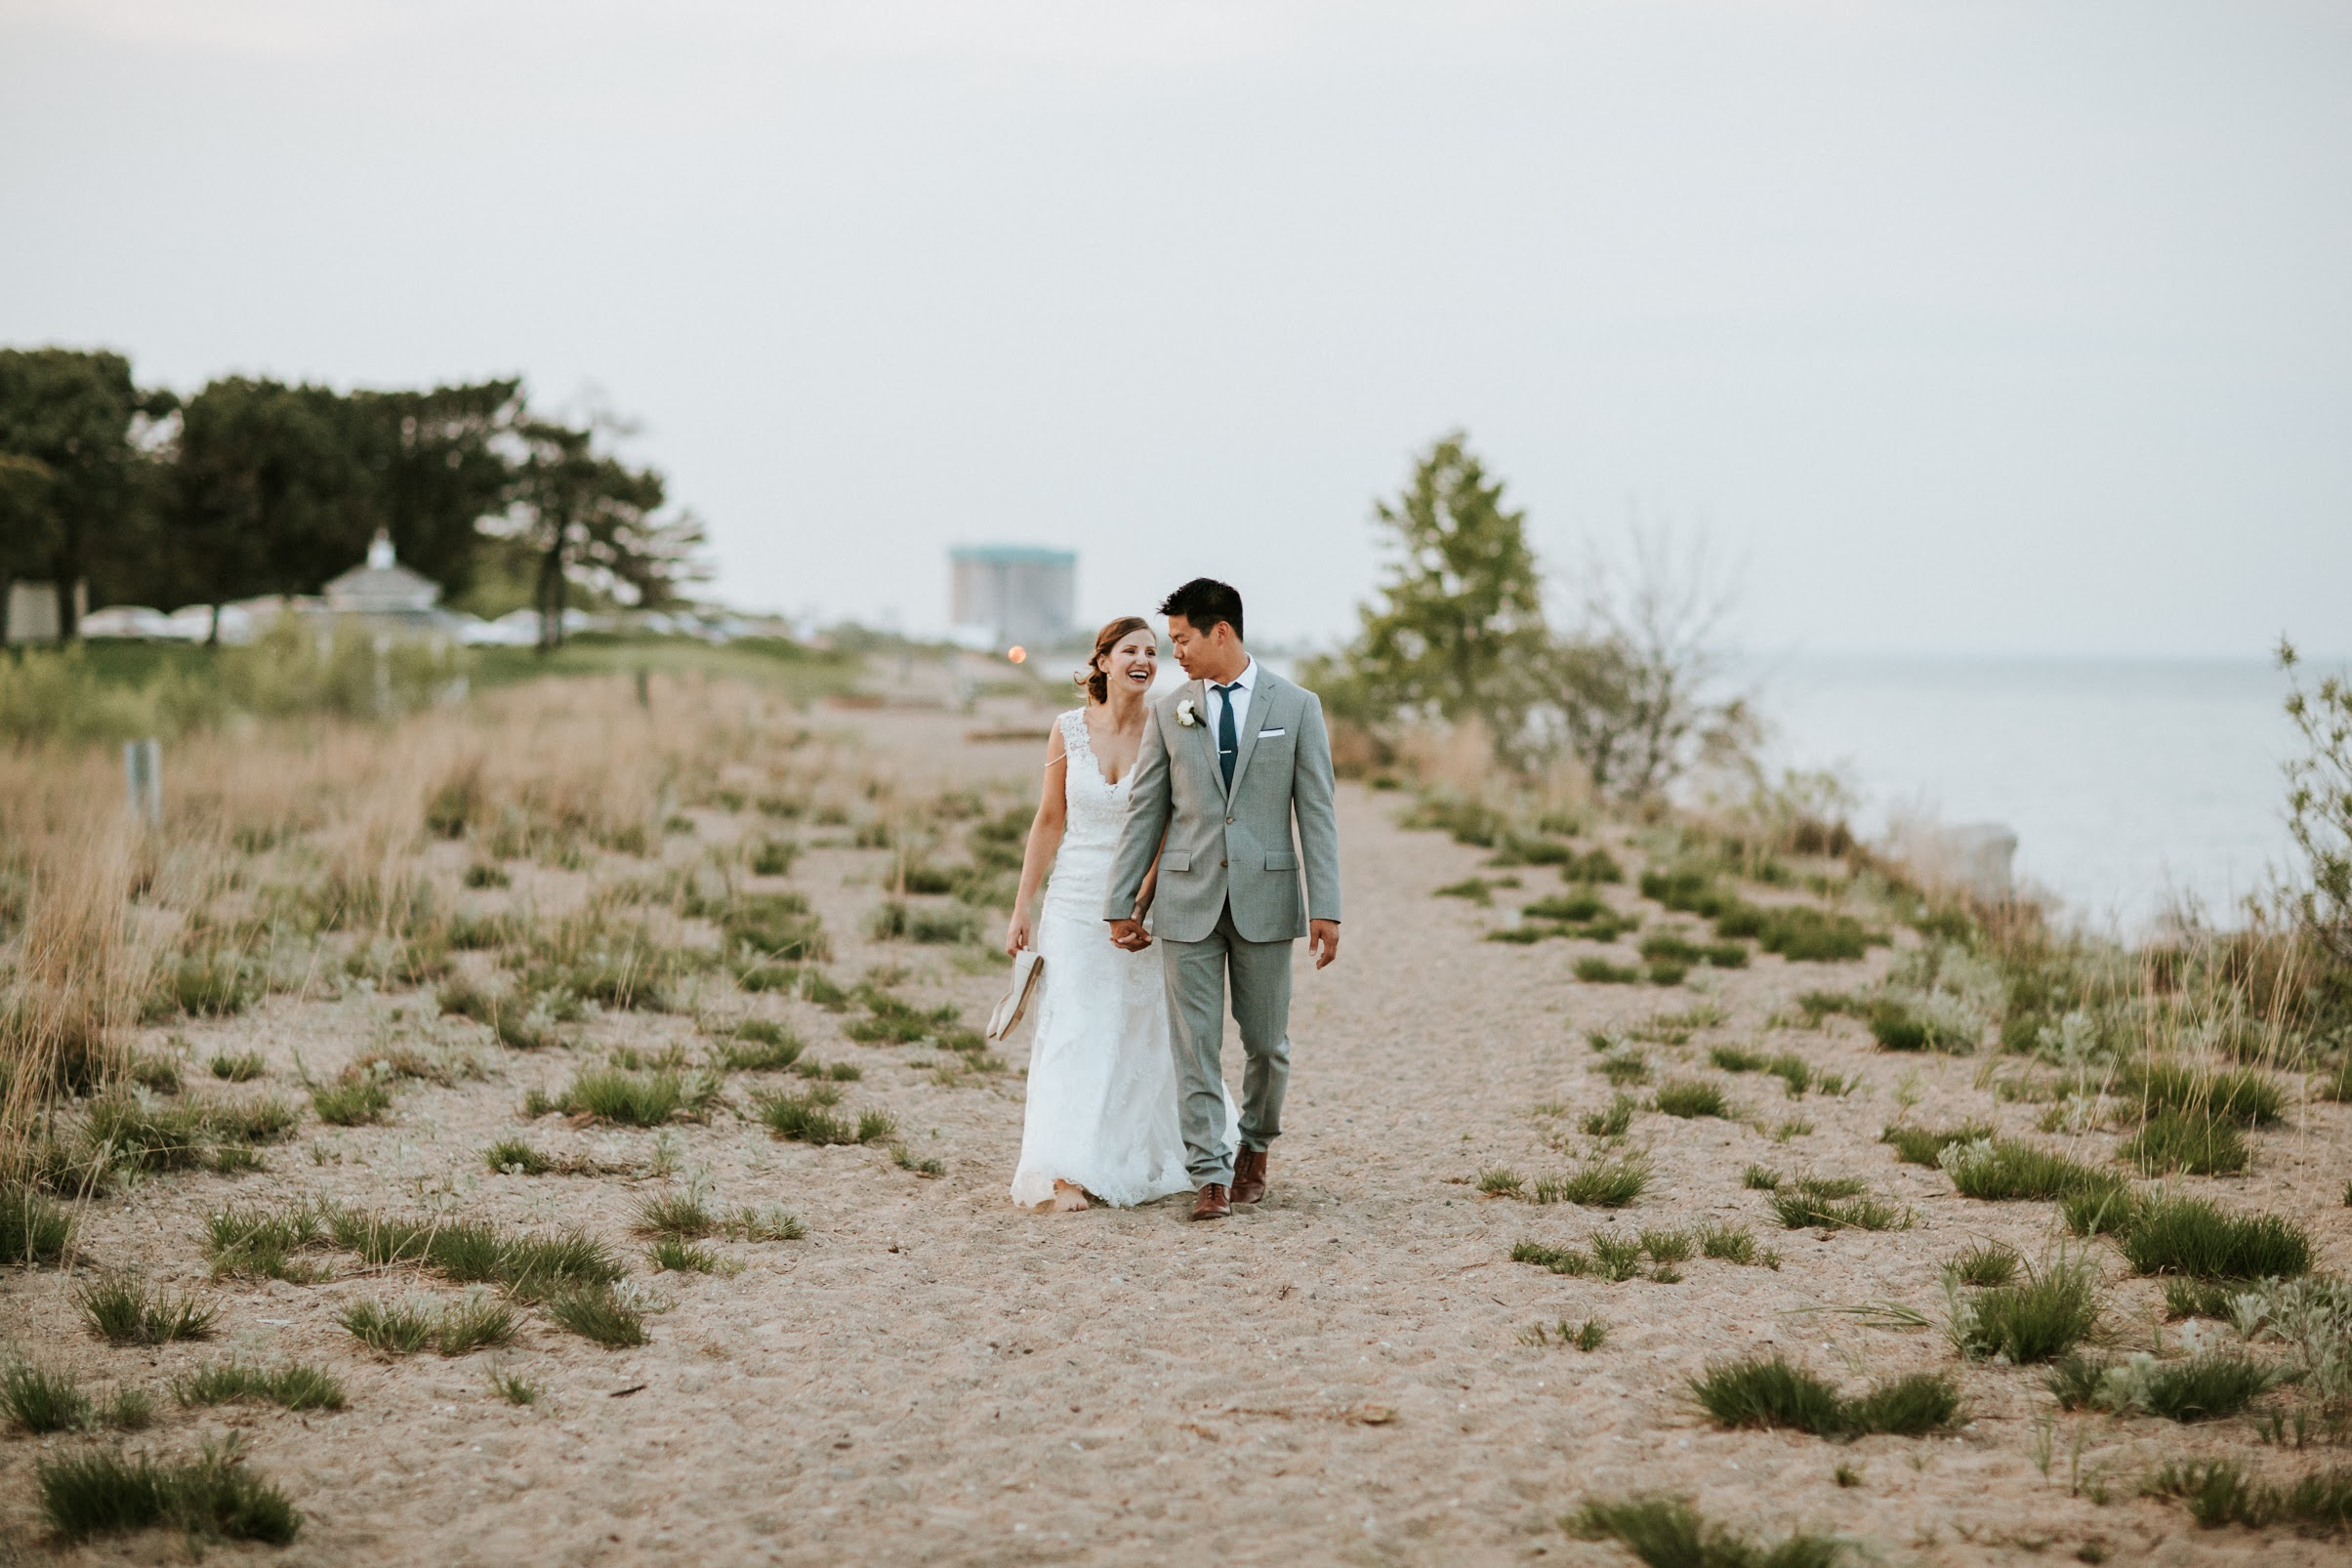 10-of-Our-Favorite-Waterfront-Wedding-Venues-in-the-U.S.-00005.jpg